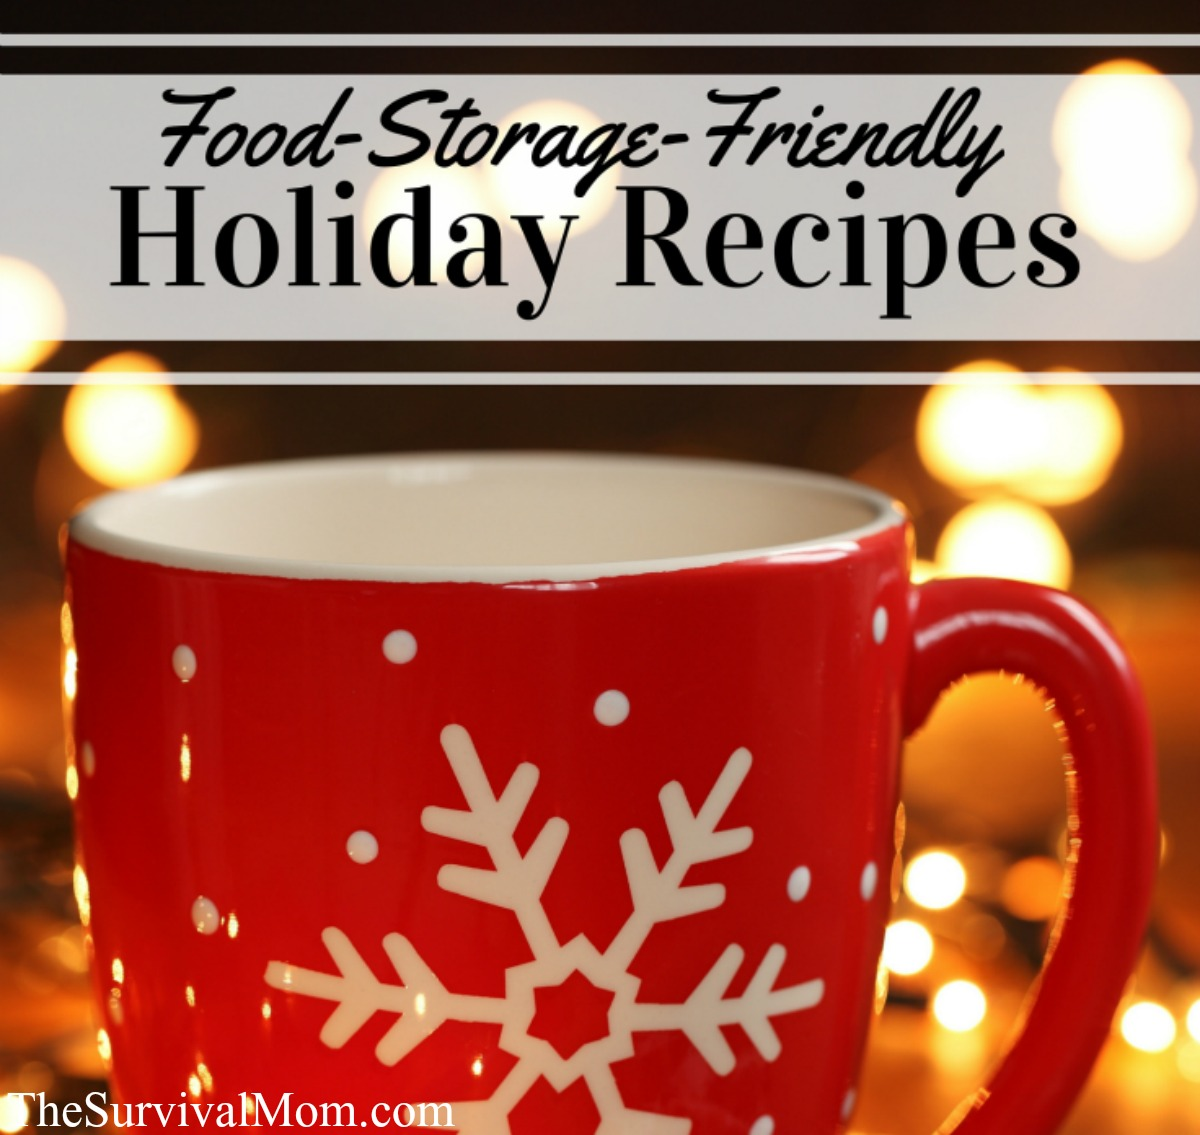 holiday recipes FB size